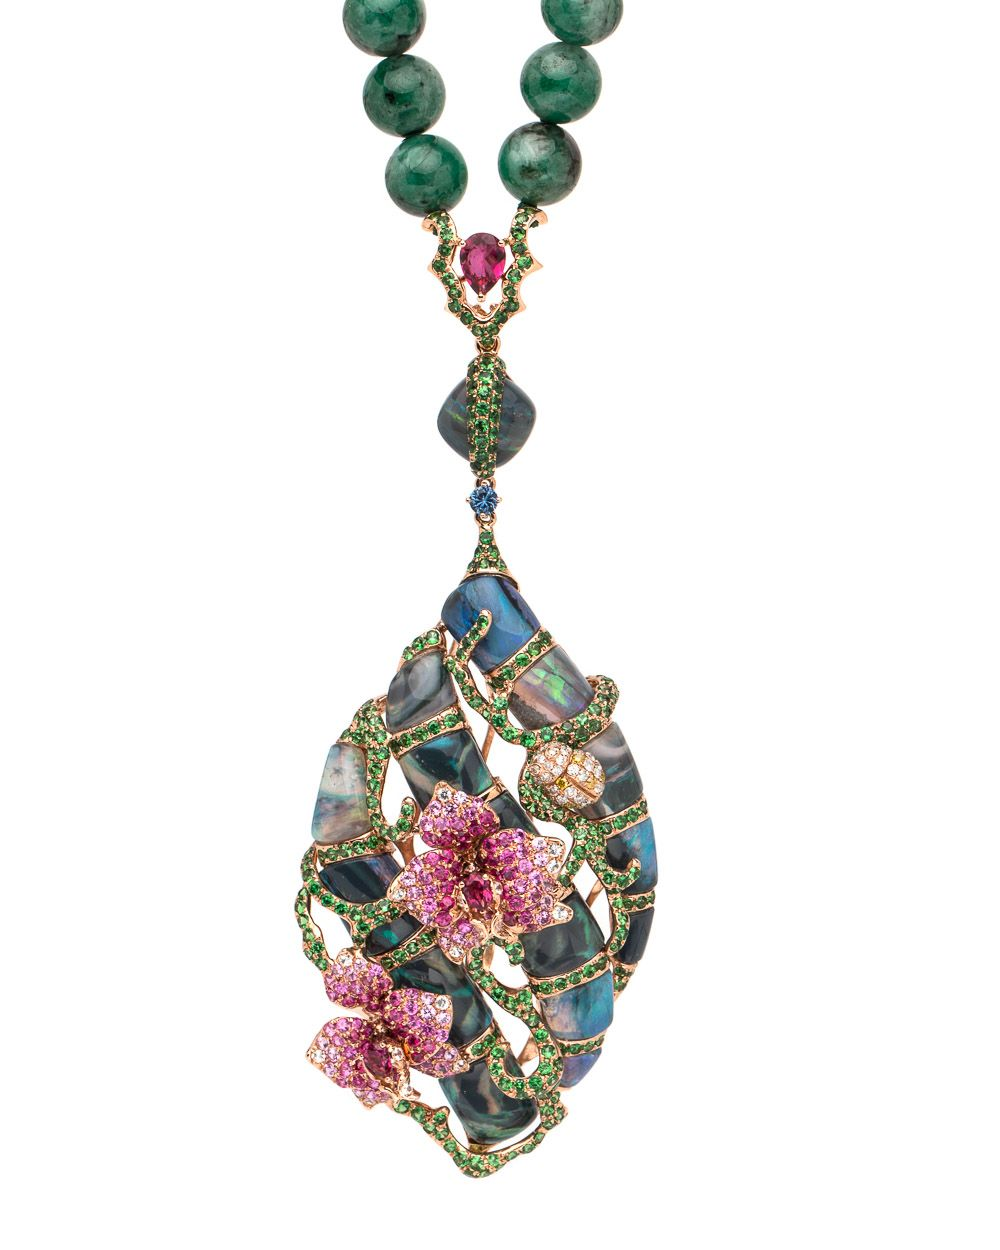 Emerald Bead with Opal Pendant Necklace by Wendy Yue